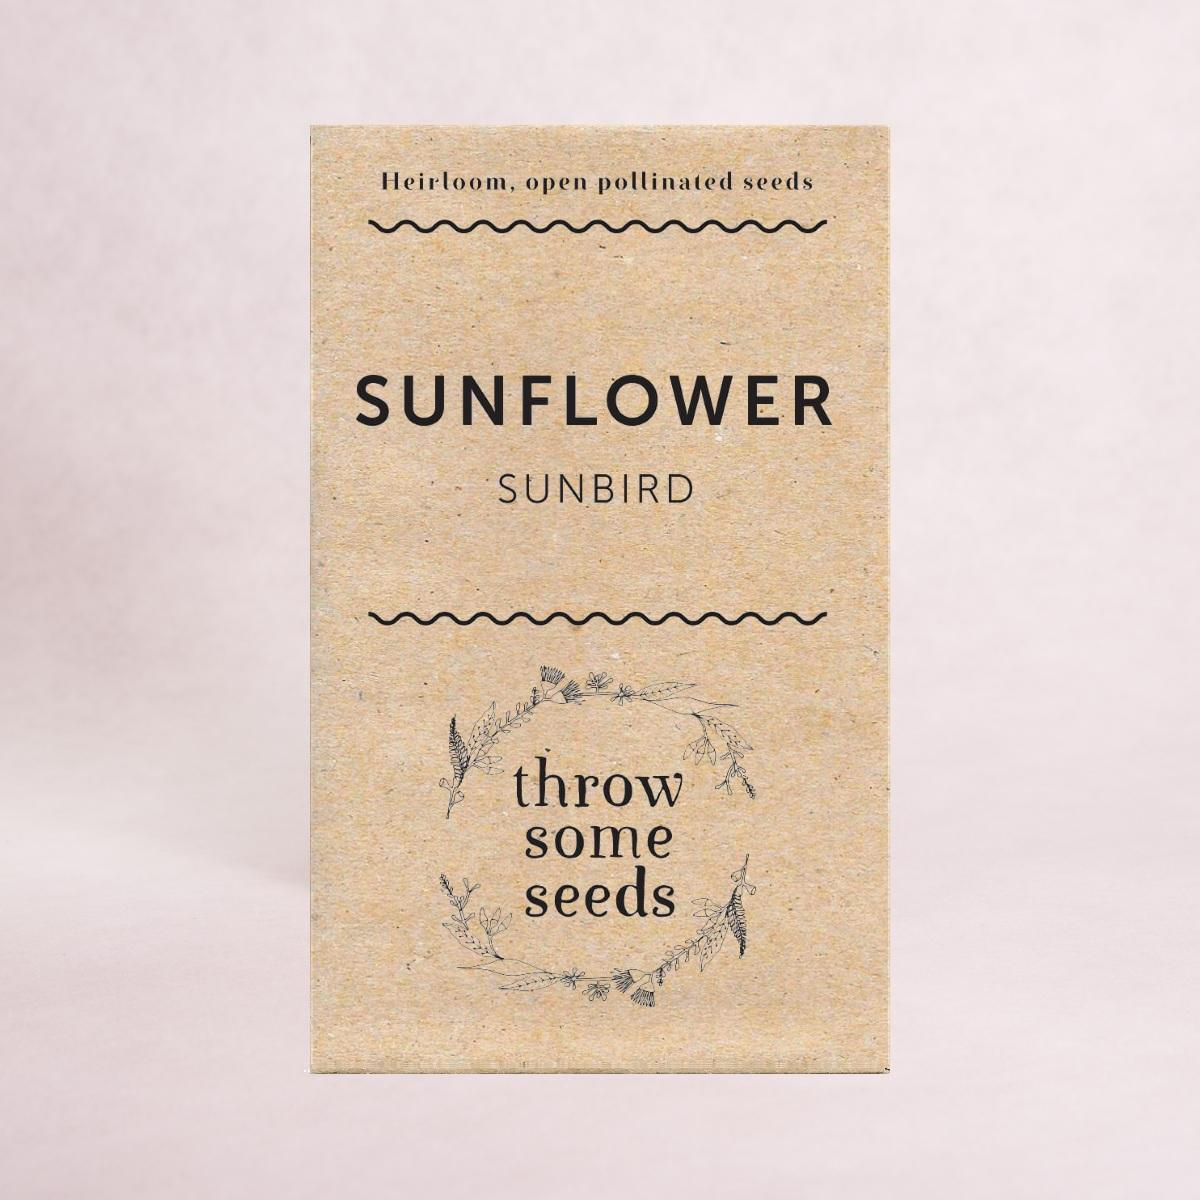 Sunflower (Sunbird) Seeds - Seeds - Throw Some Seeds - Australian gardening gifts and eco products online!